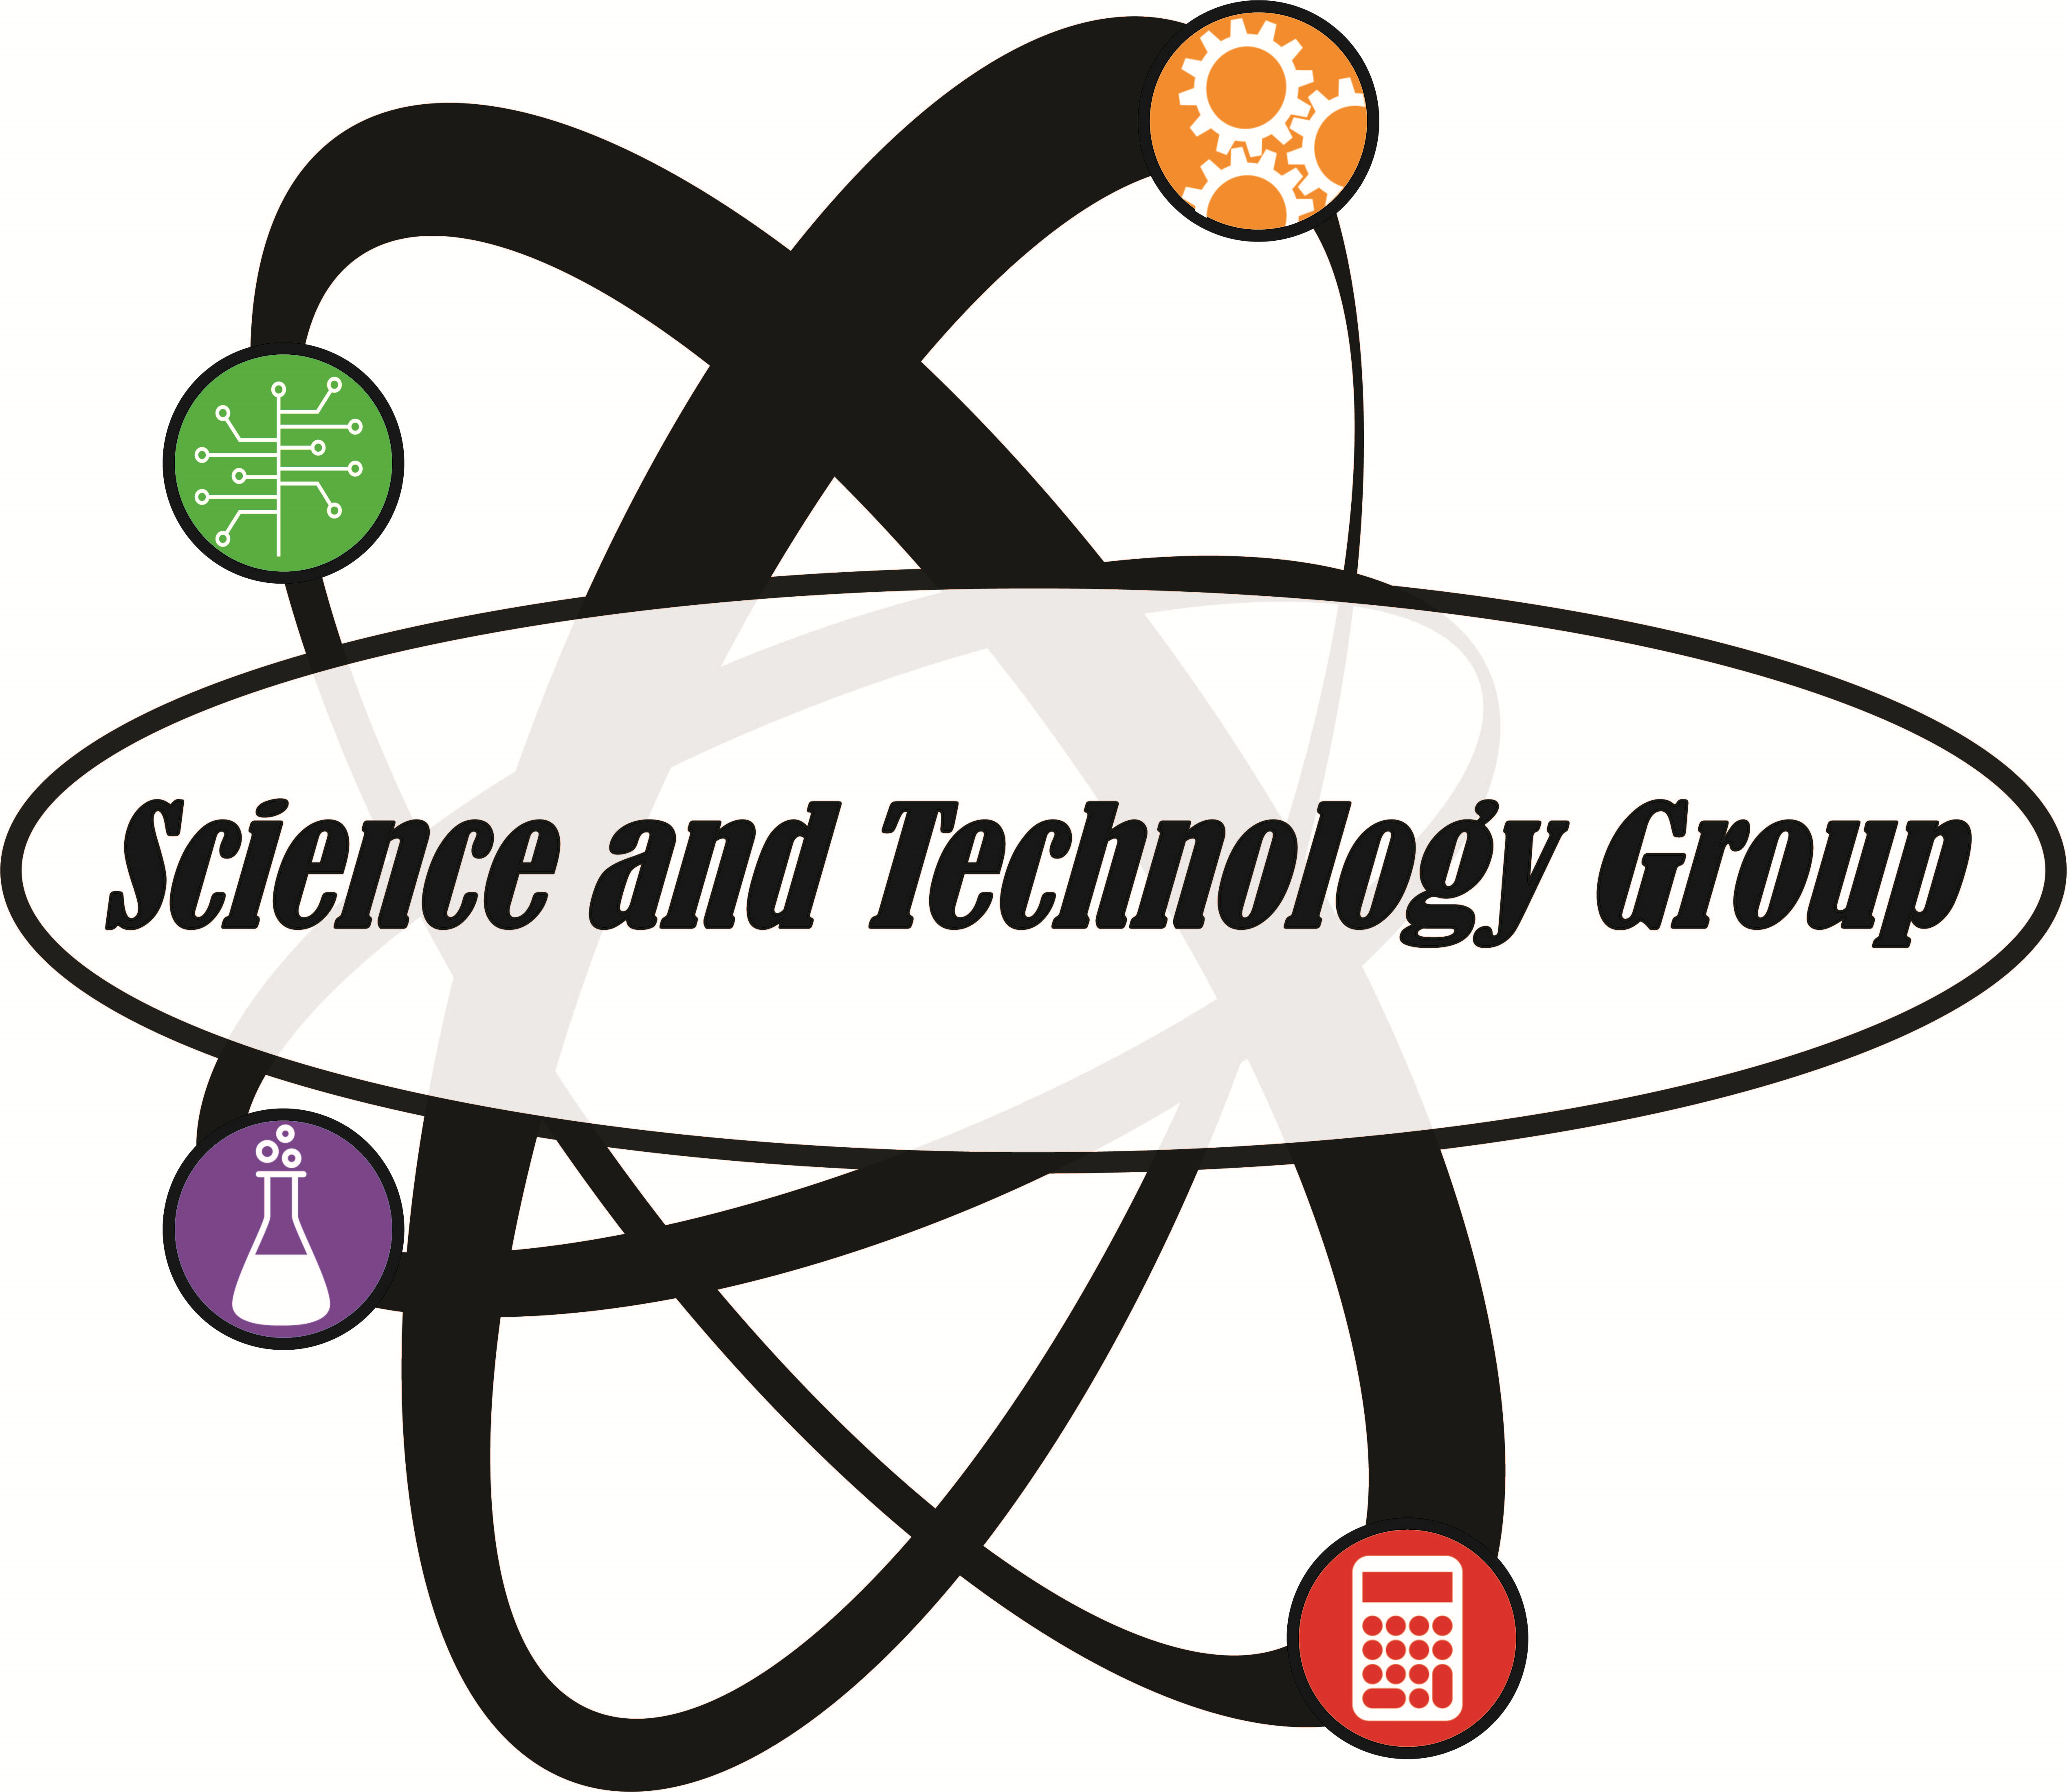 Science and Technology Group